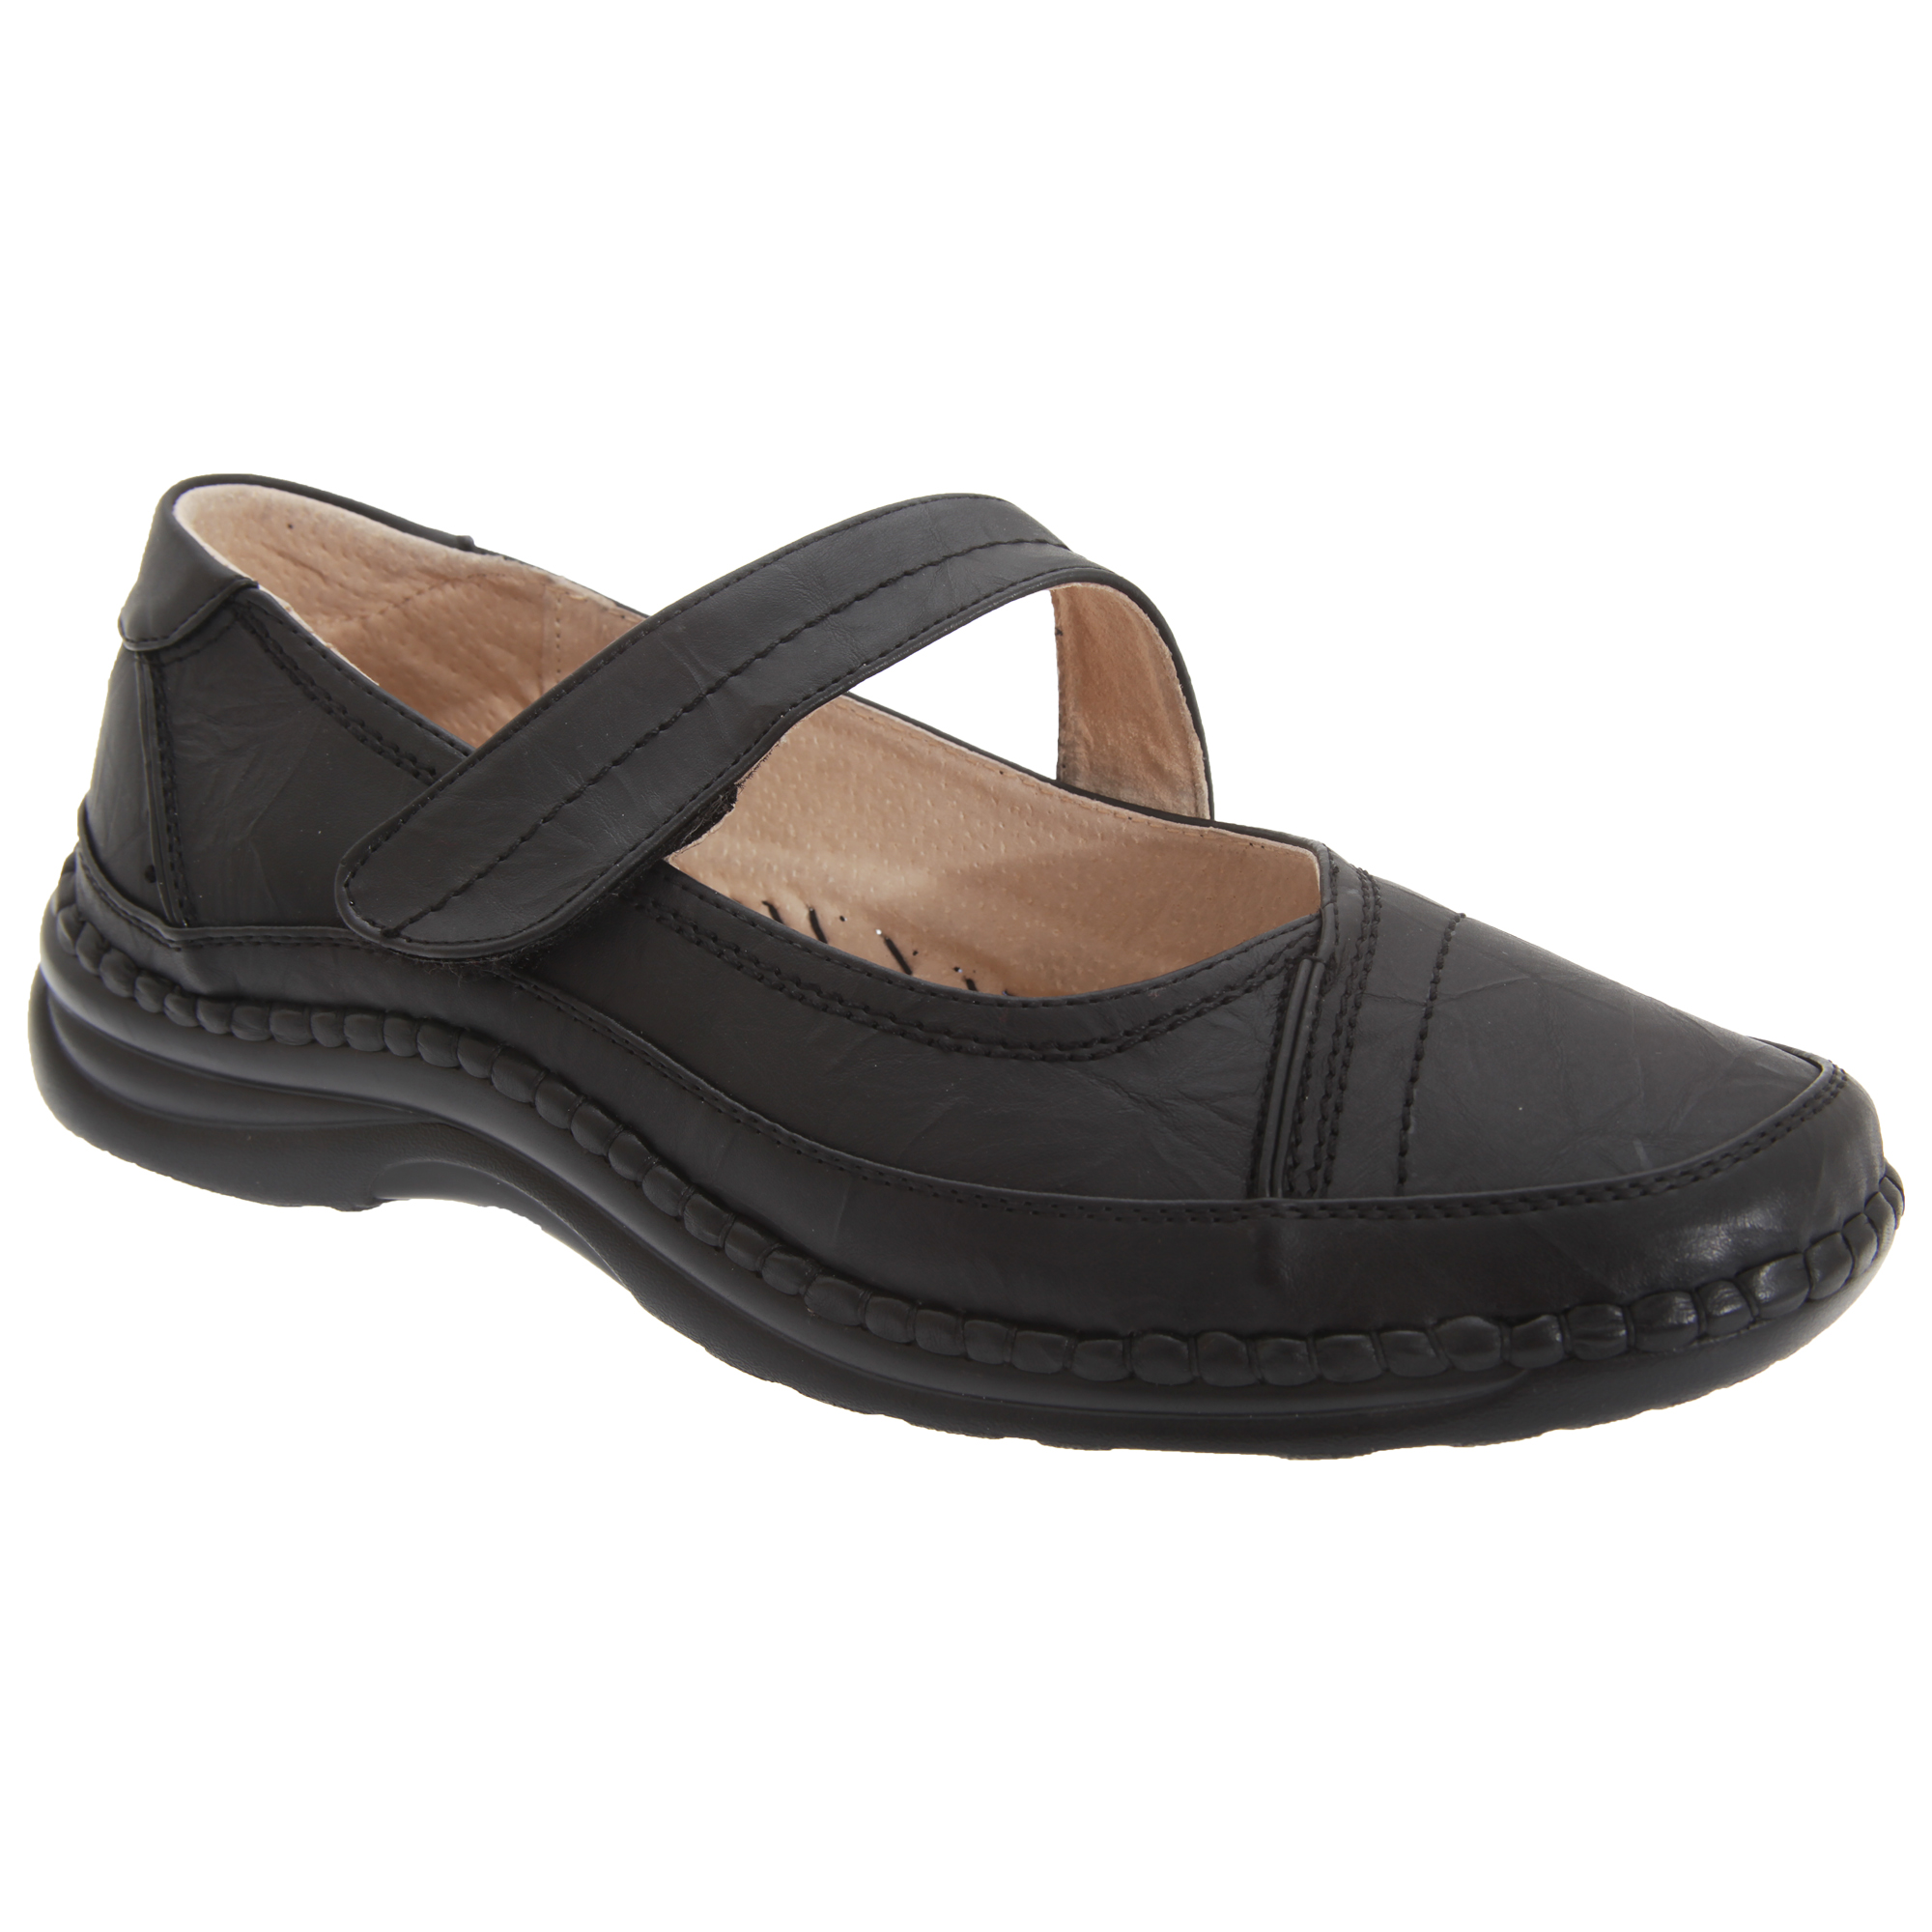 Wide Fitting Ladies Shoes Australia